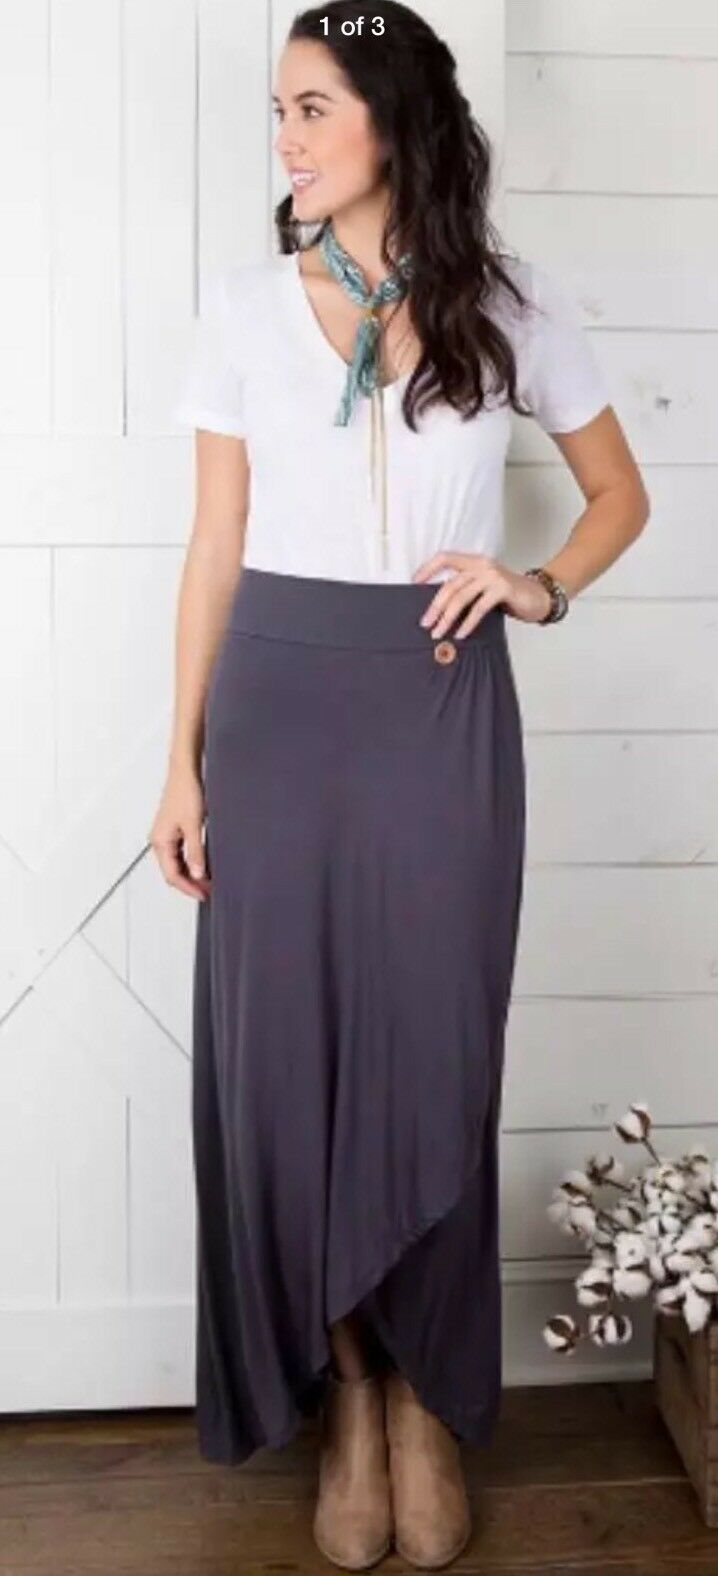 Matilda Jane Sweet And Simple Maxi Skirt Size Medium Woman Joanna Gaines new